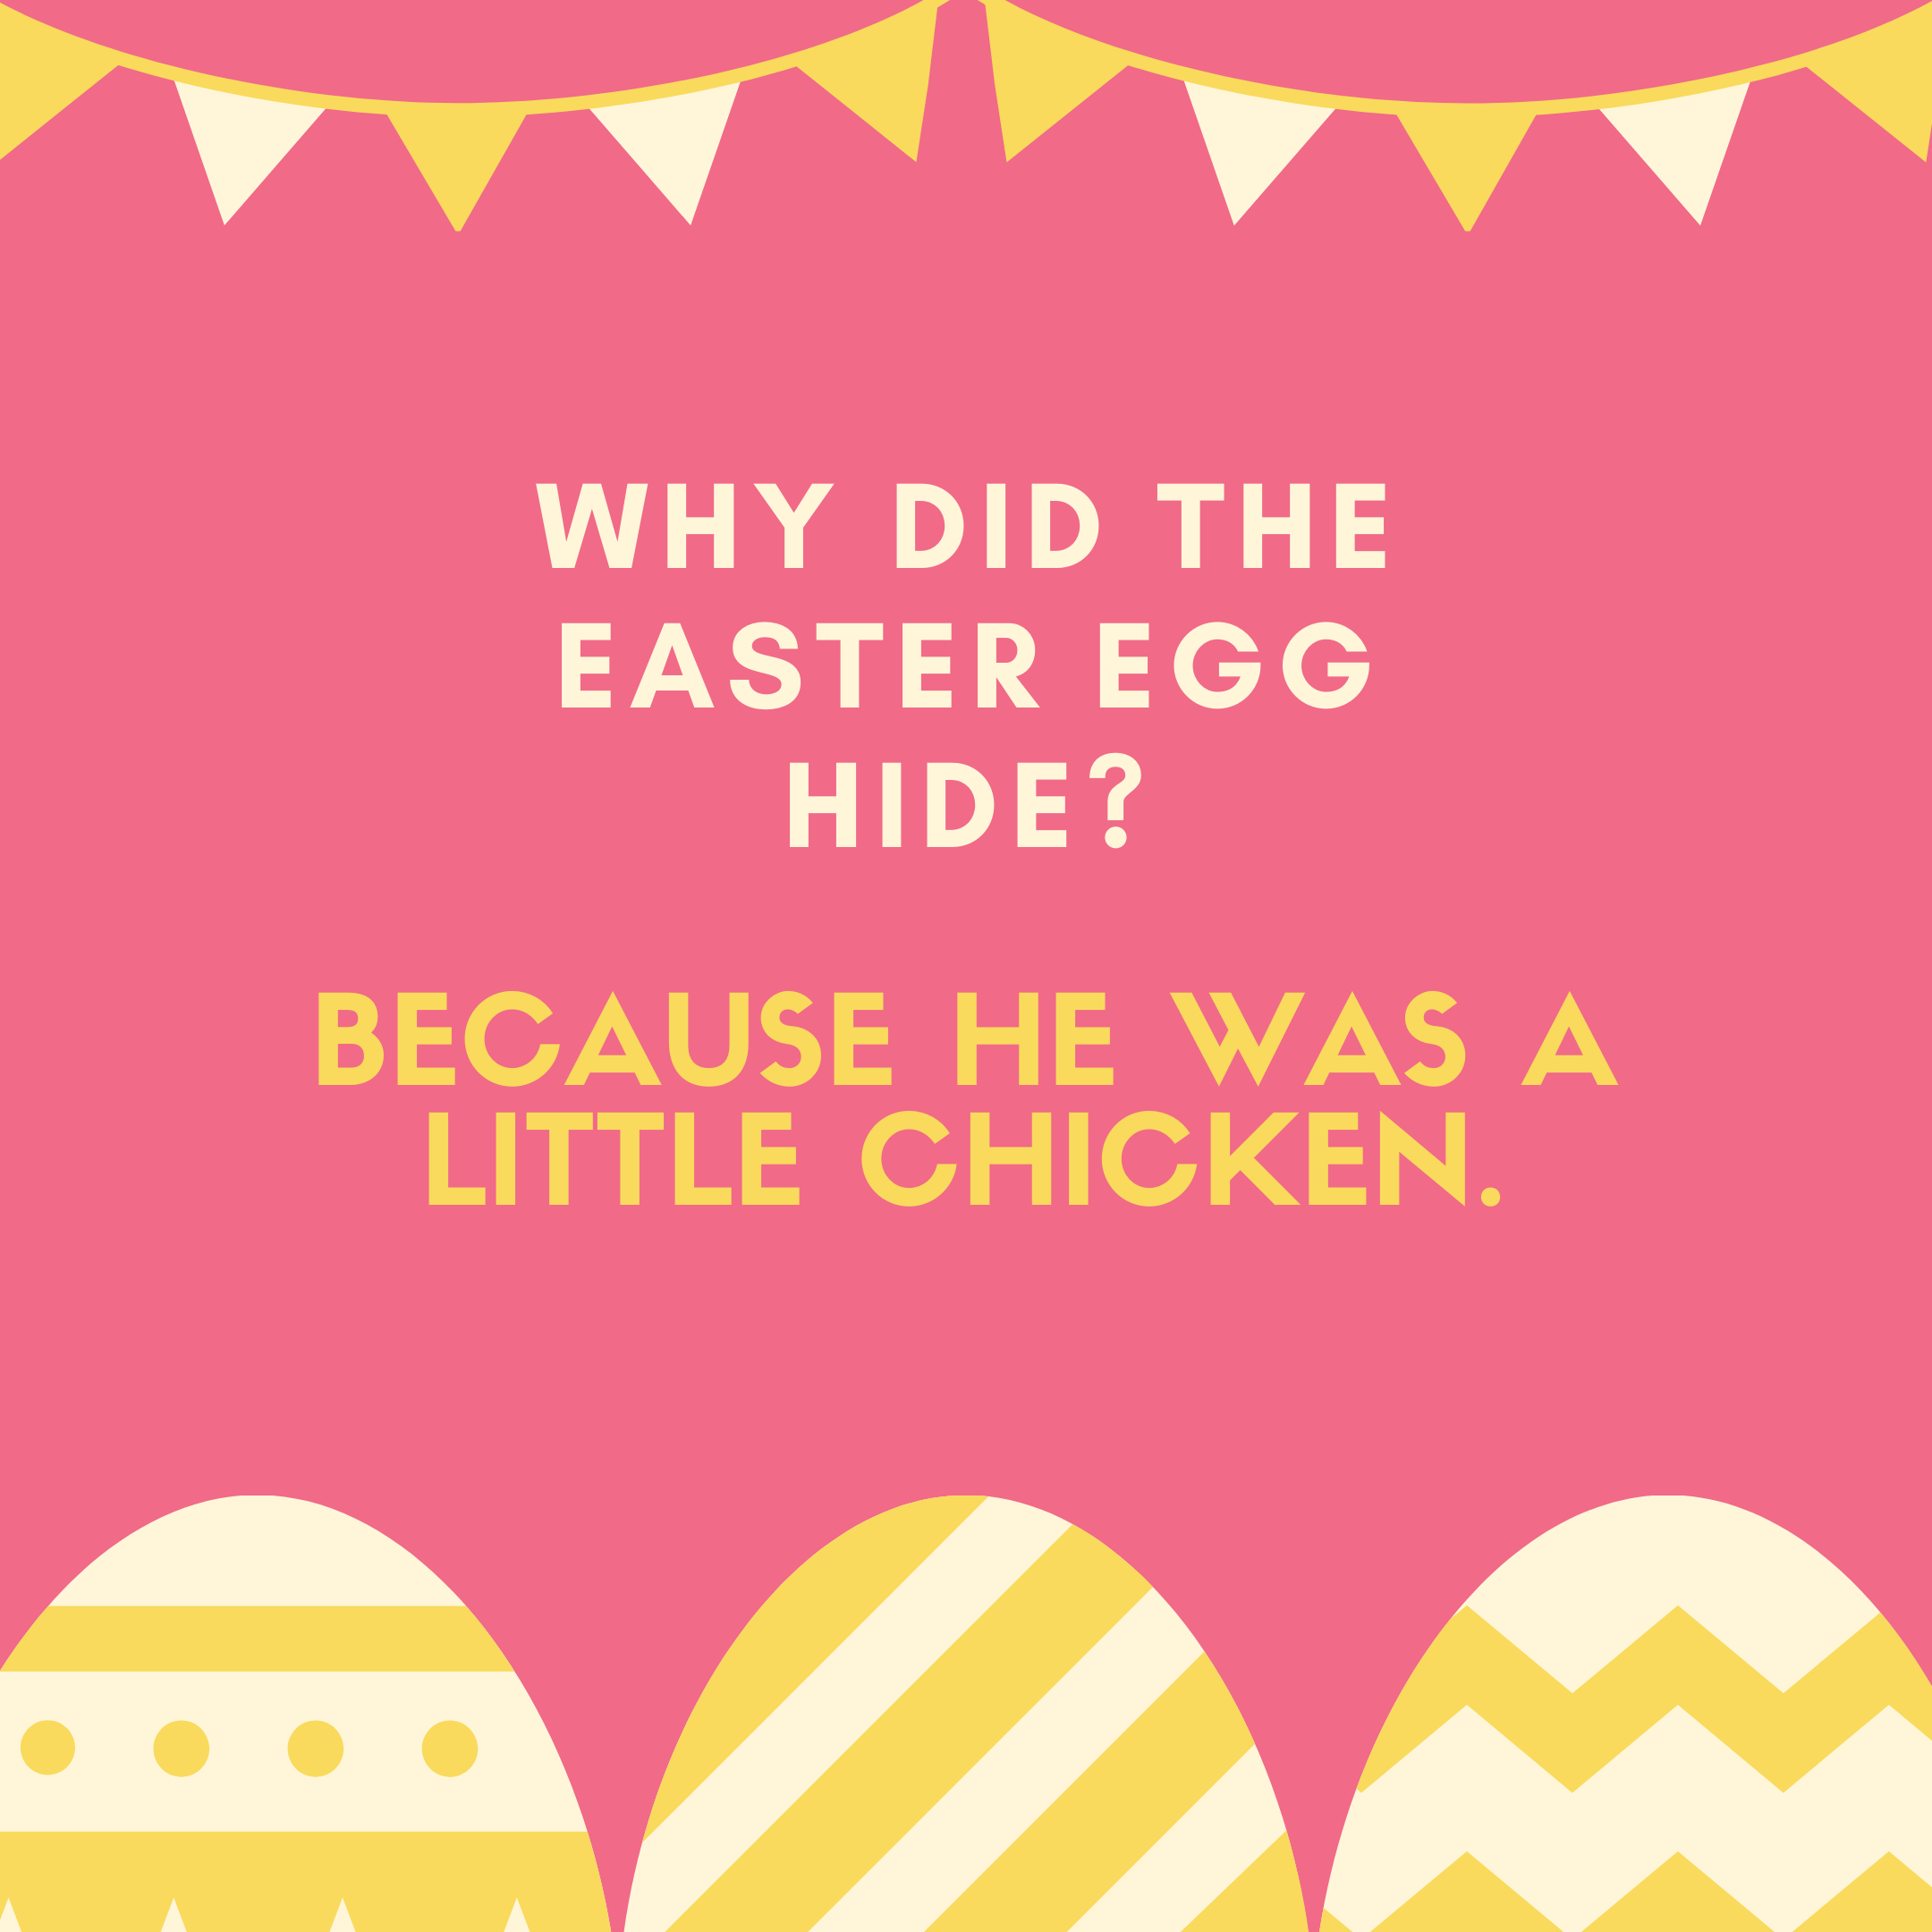 Why did the Easter egg hide? Because he was a little chicken.